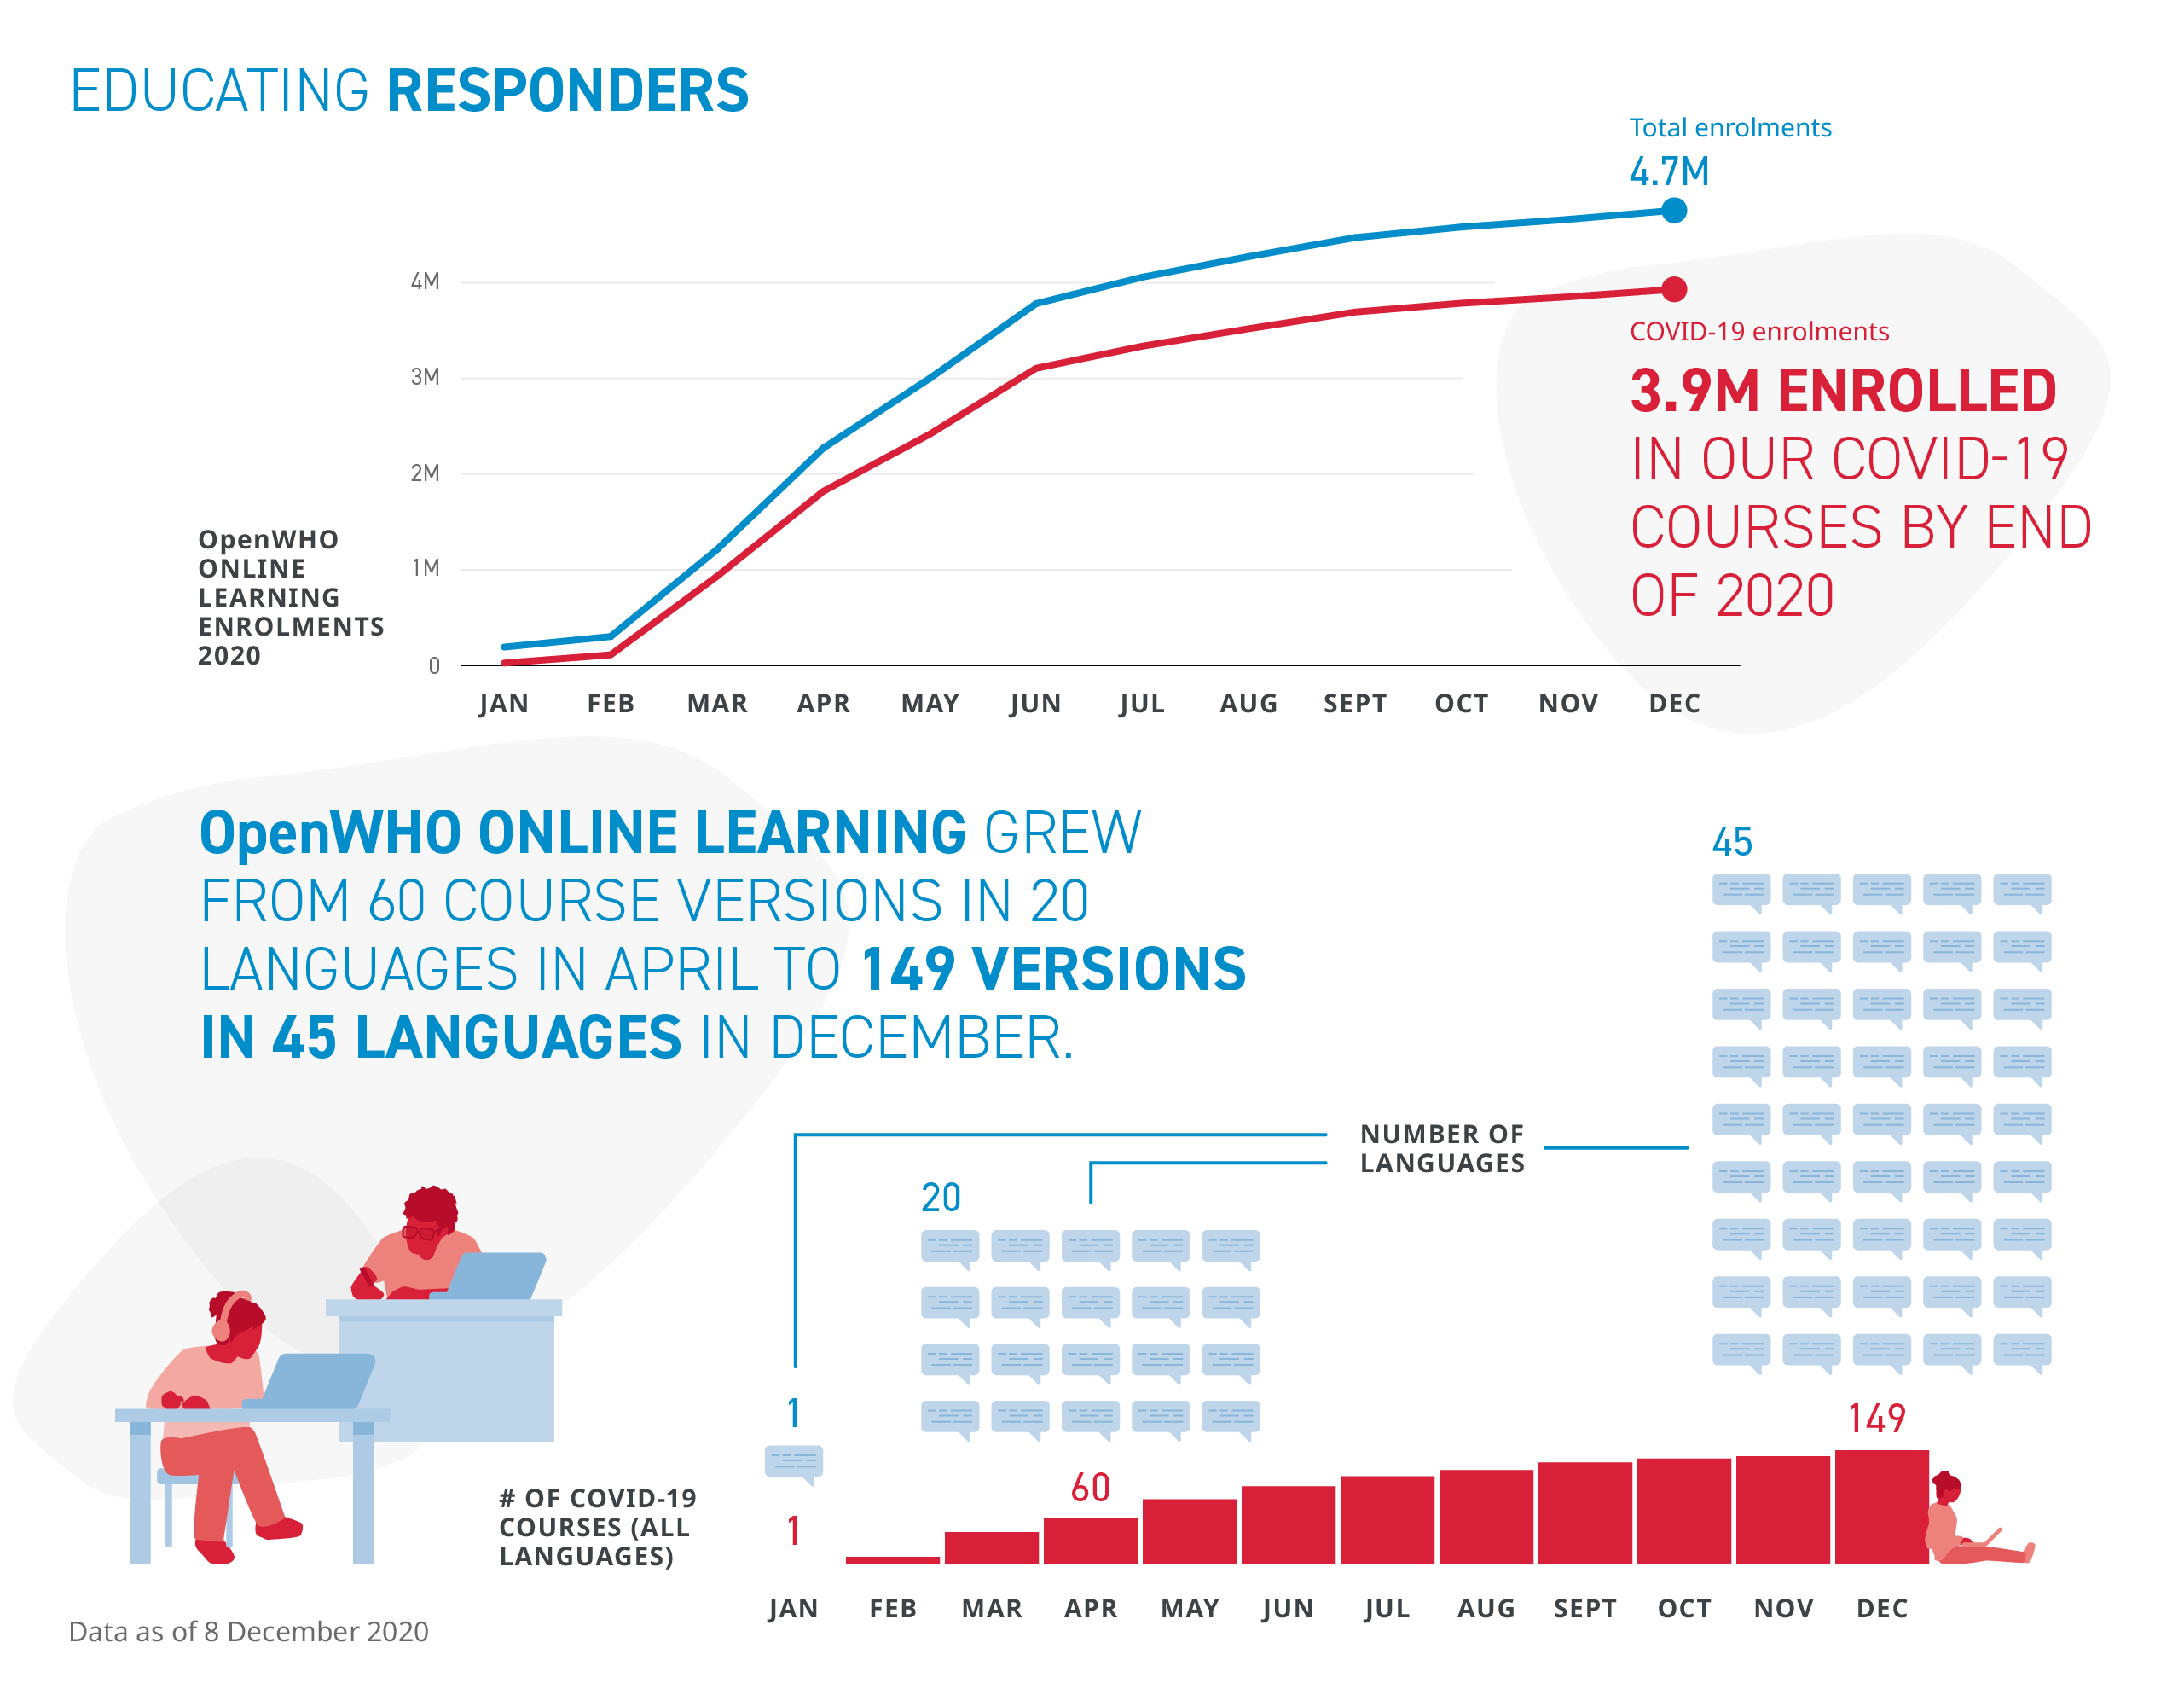 3.9 million people enrolled in OpenWHO COVID-19 courese by the end of 2020; 149 course versions available in 45 languages